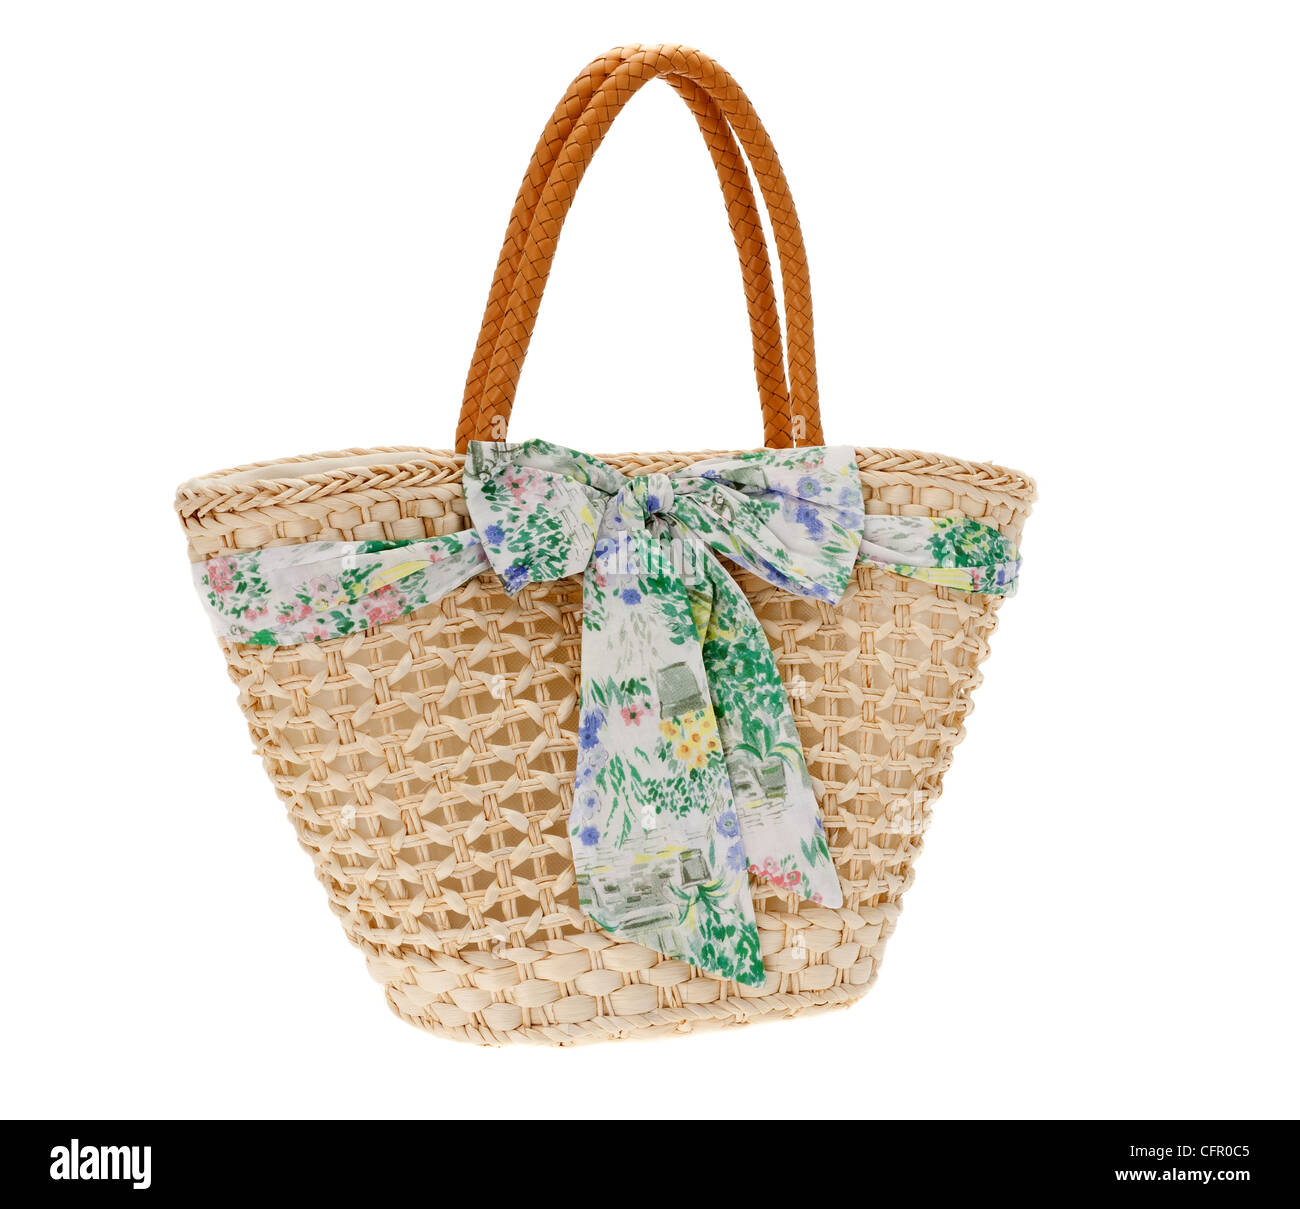 Straw beach bag isolated against a white background - Stock Image